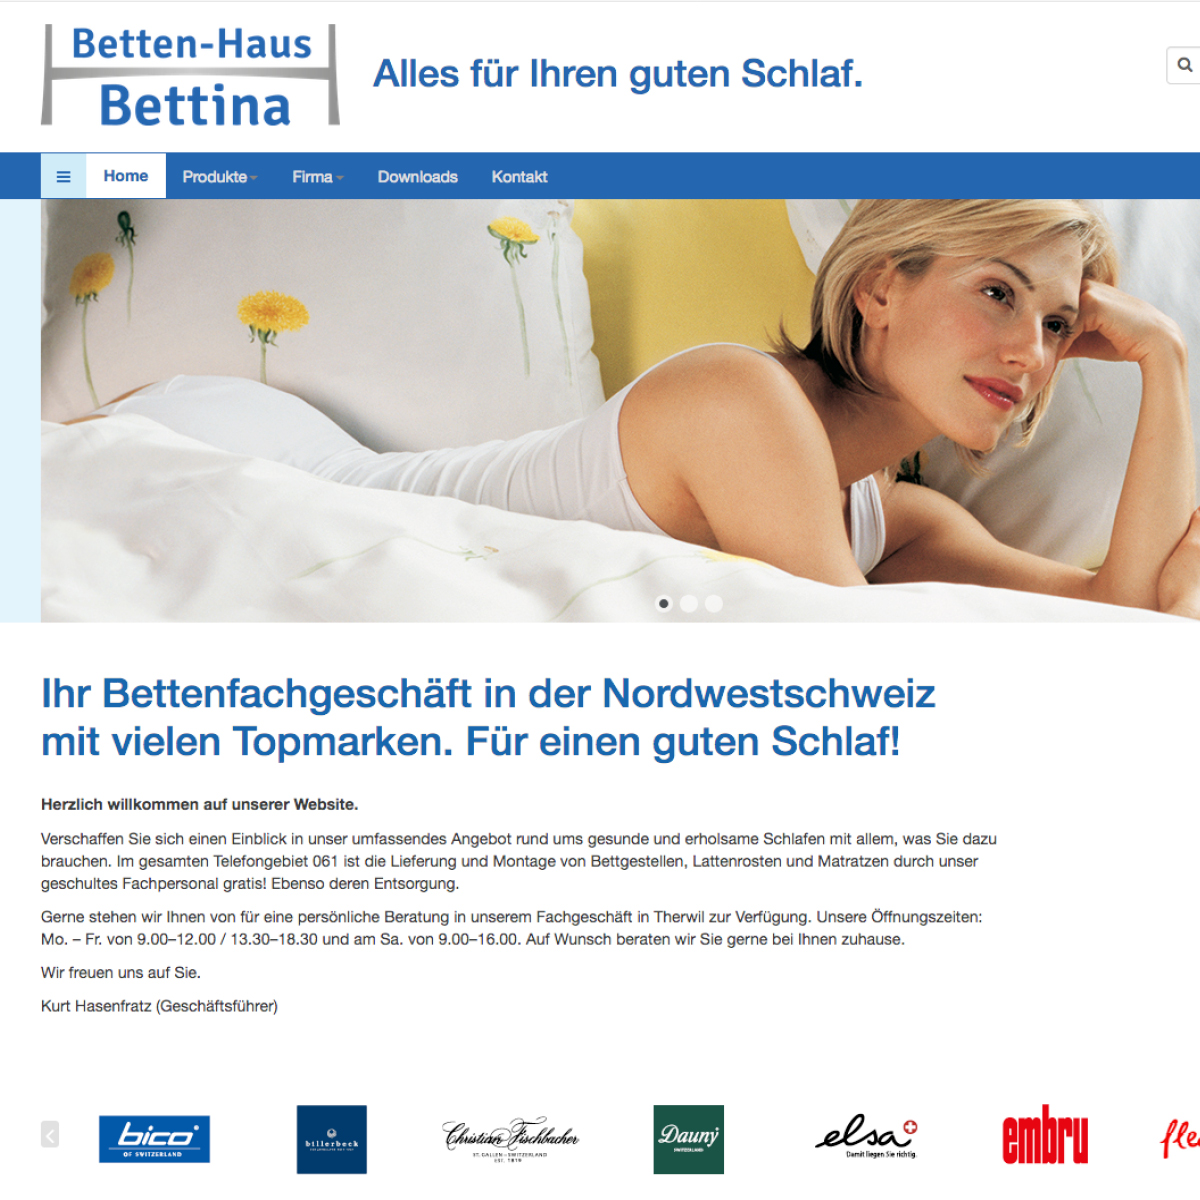 Bettenhaus Bettina